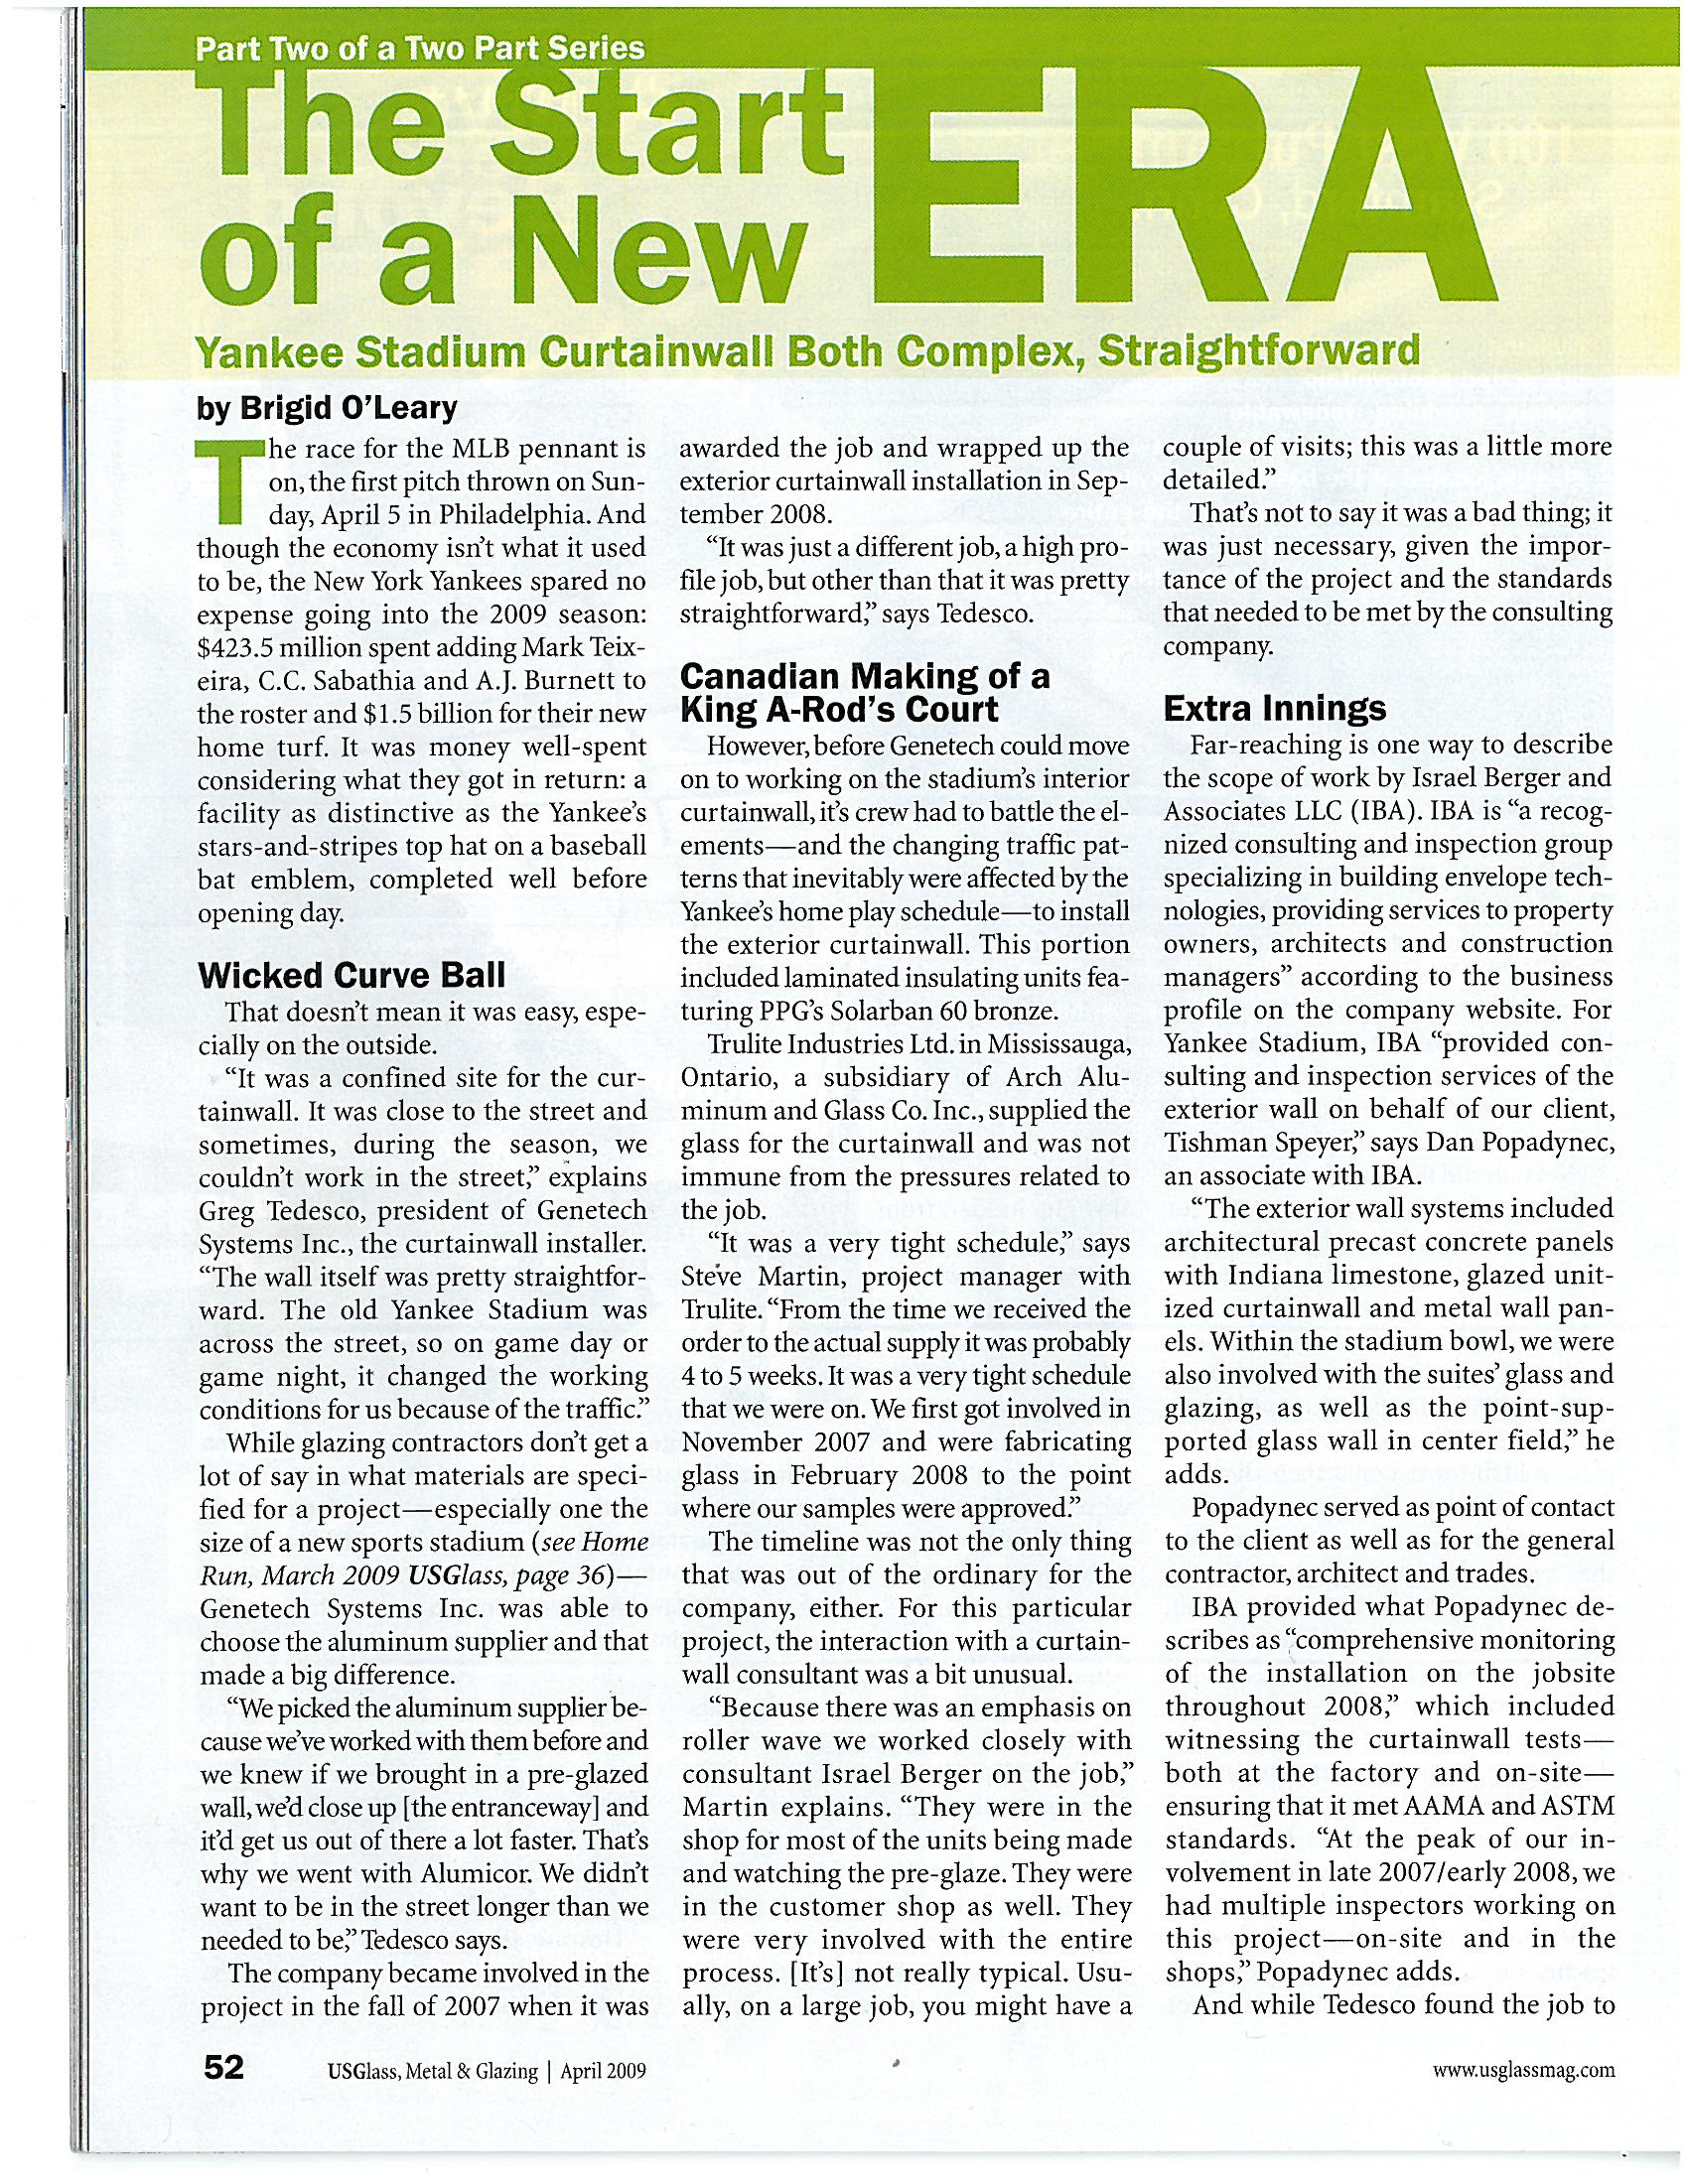 US Glass- Metal - Glazing - April 2009 - The Start Of A New Era_Page_1